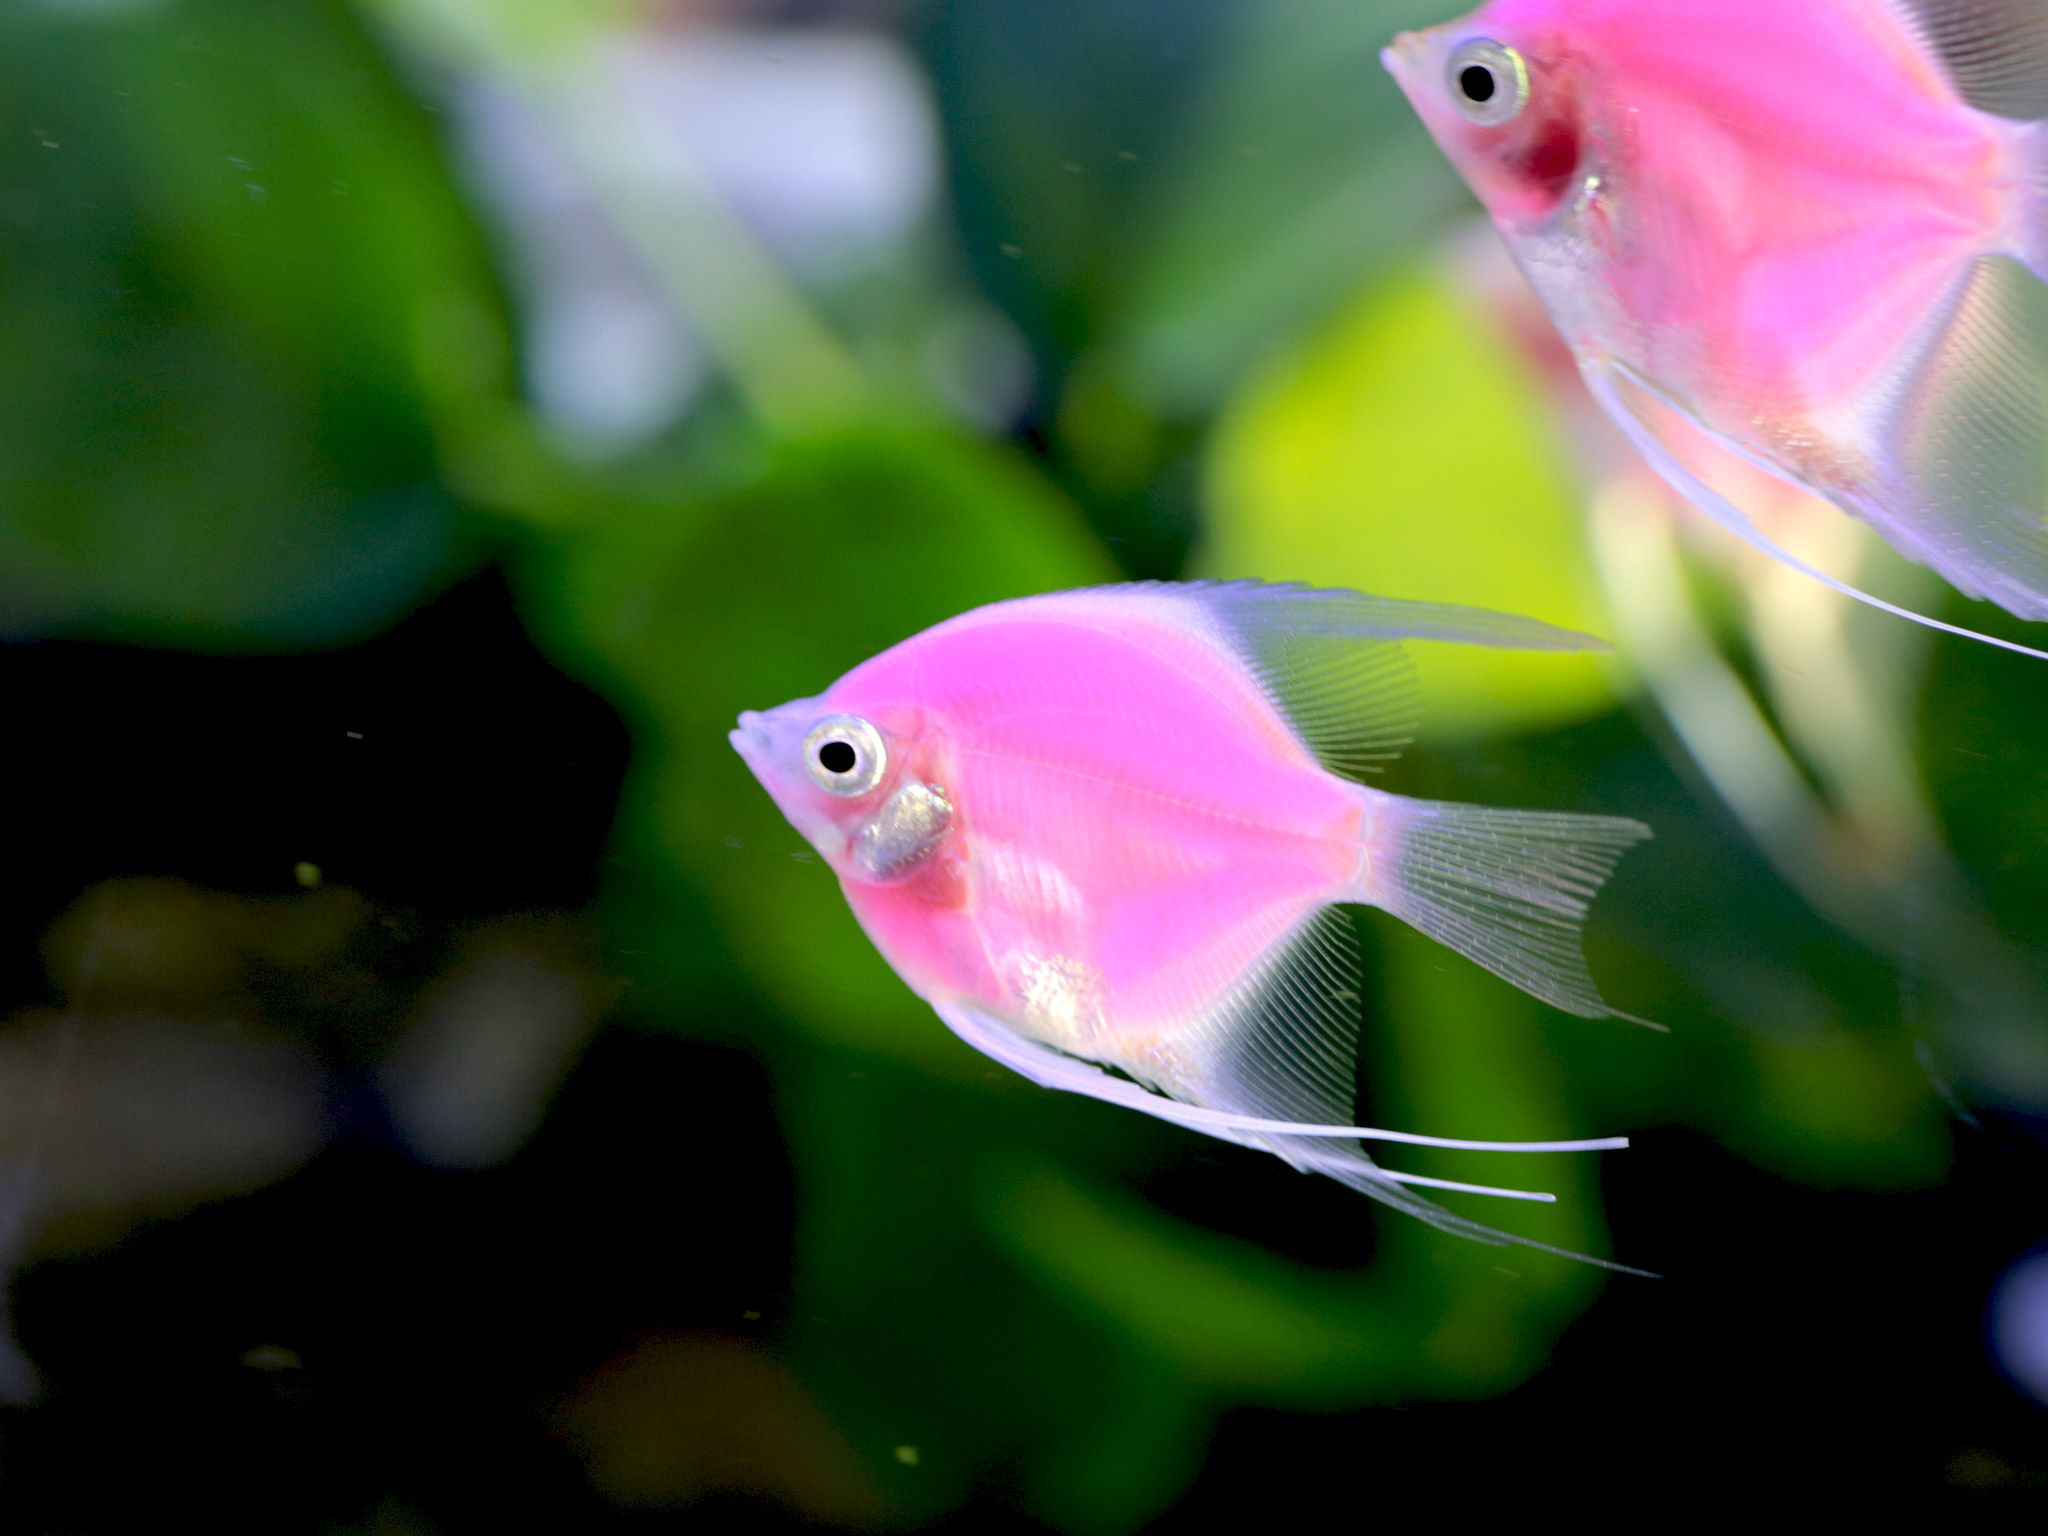 A Pink Fluorescent angelfish. This image is from Taiwan: Island of Fish. [Photo of the day - July 2015]